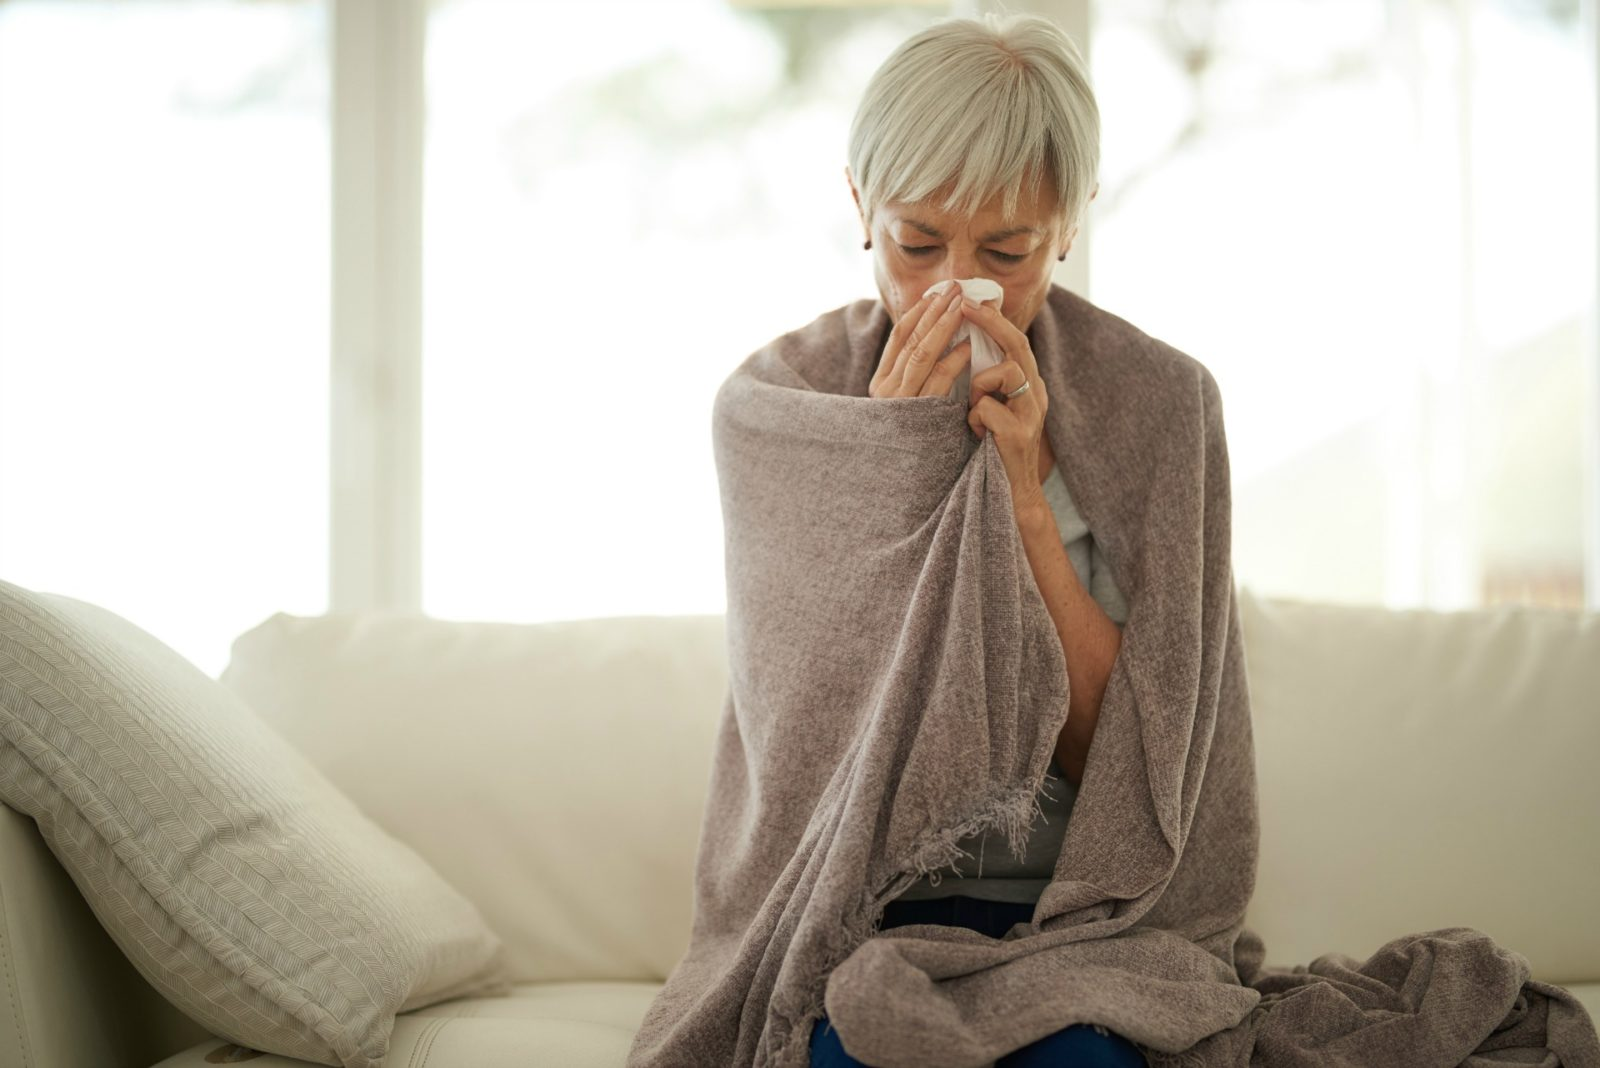 Older people have weaker immune systems and are more prone to the influenza virus.